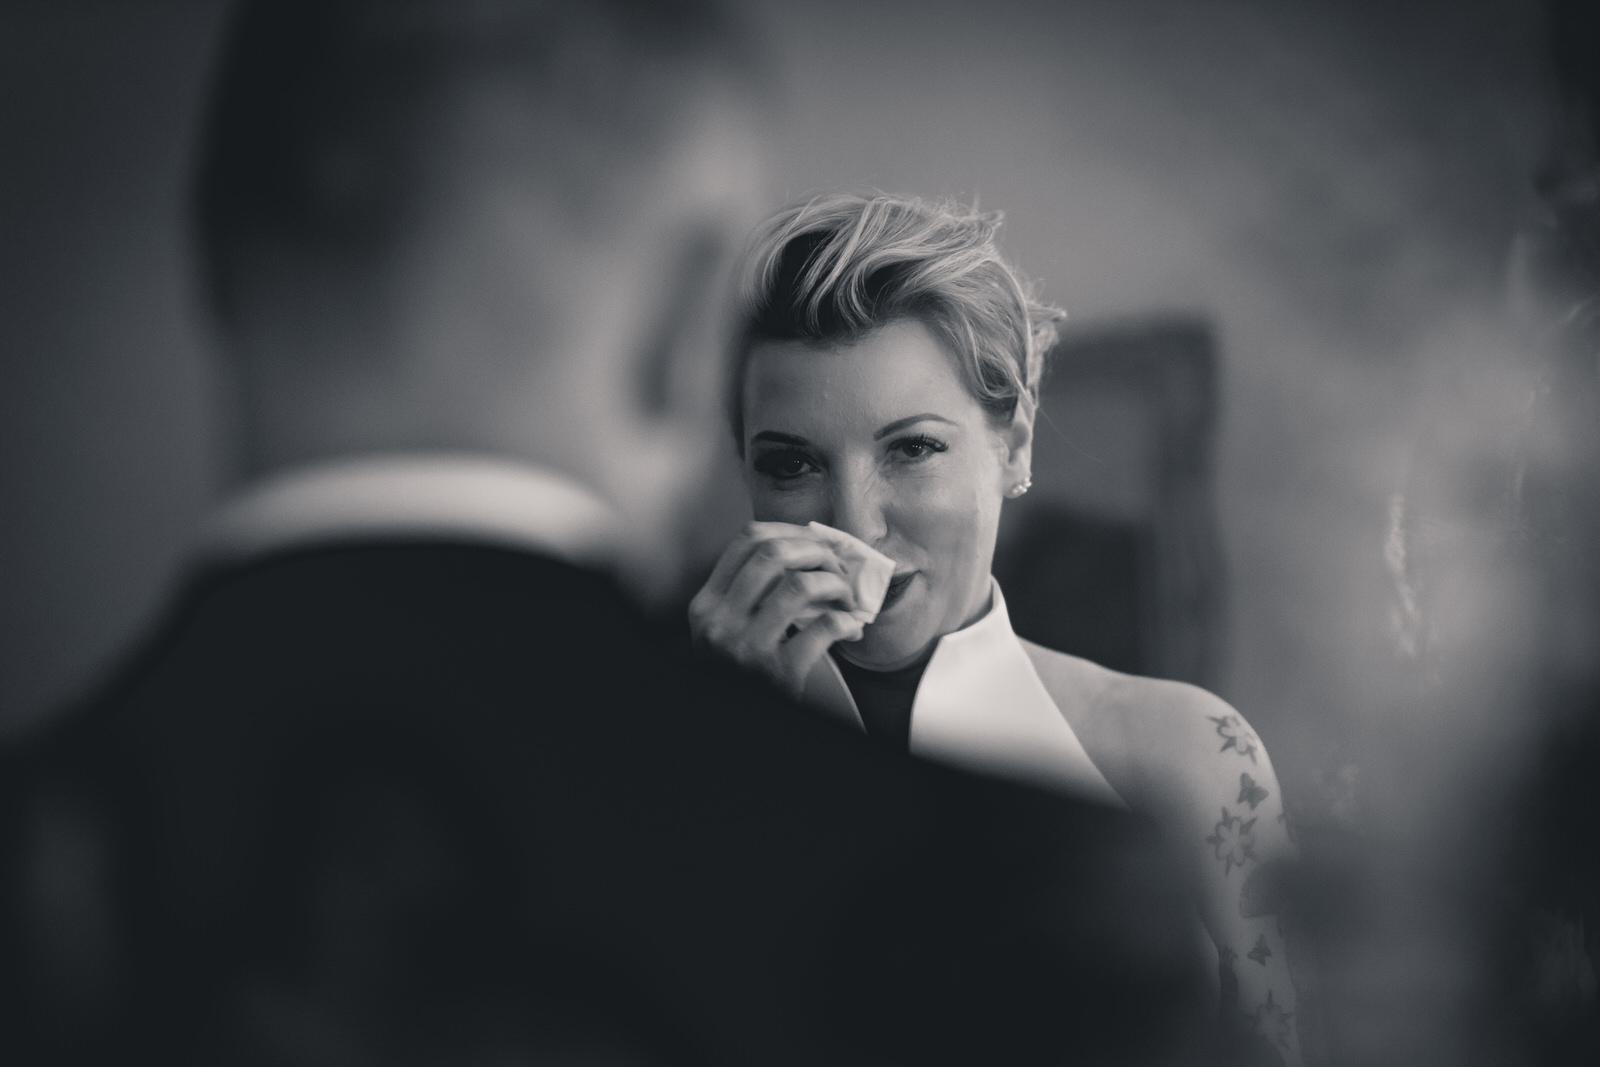 leeds-yorkshire-wedding-photographer-candid-emothion 1.jpg